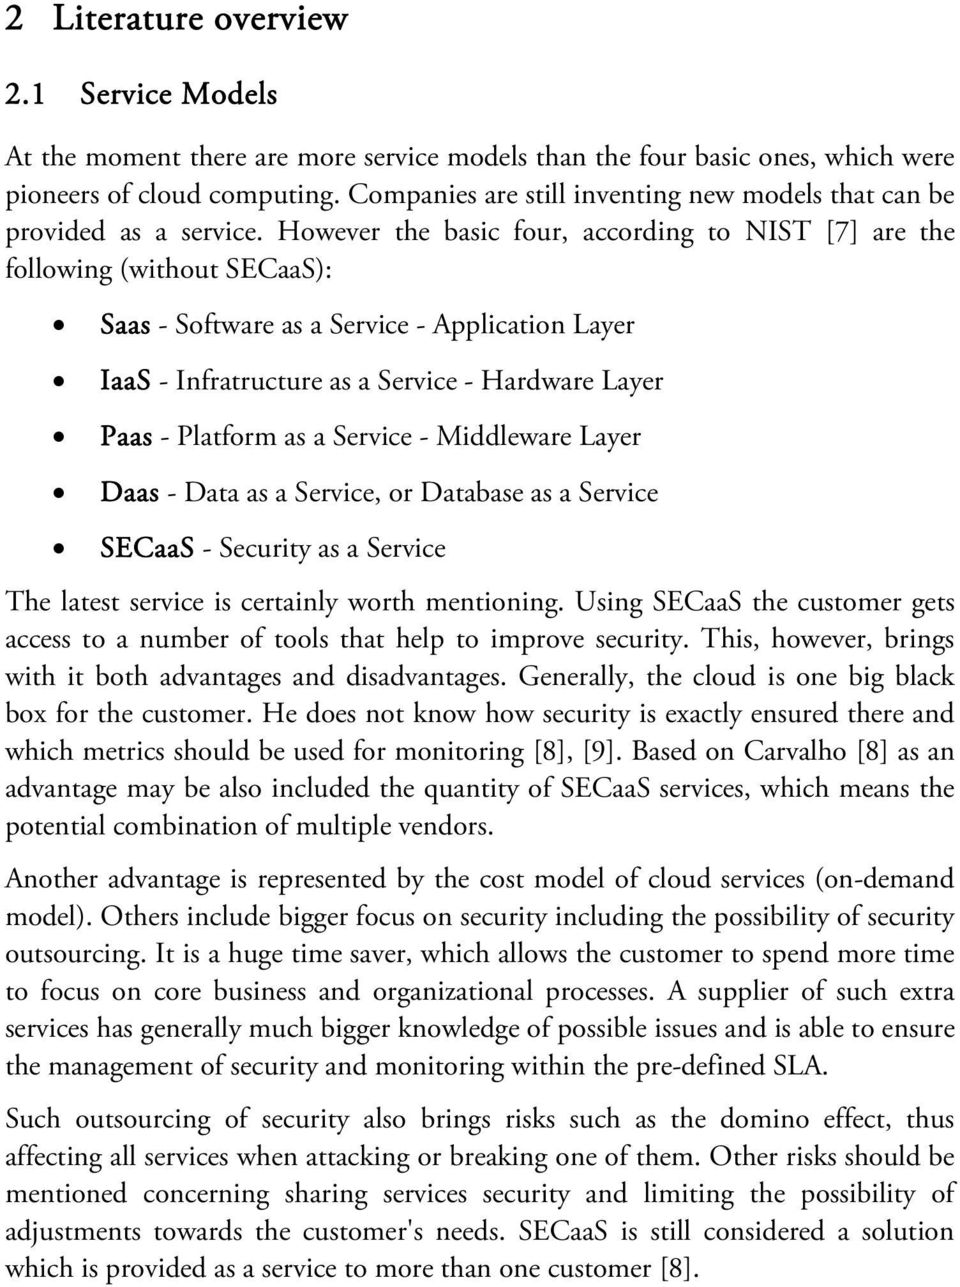 However the basic four, according to NIST [7] are the following (without SECaaS): Saas - Software as a Service - Application Layer IaaS - Infratructure as a Service - Hardware Layer Paas - Platform